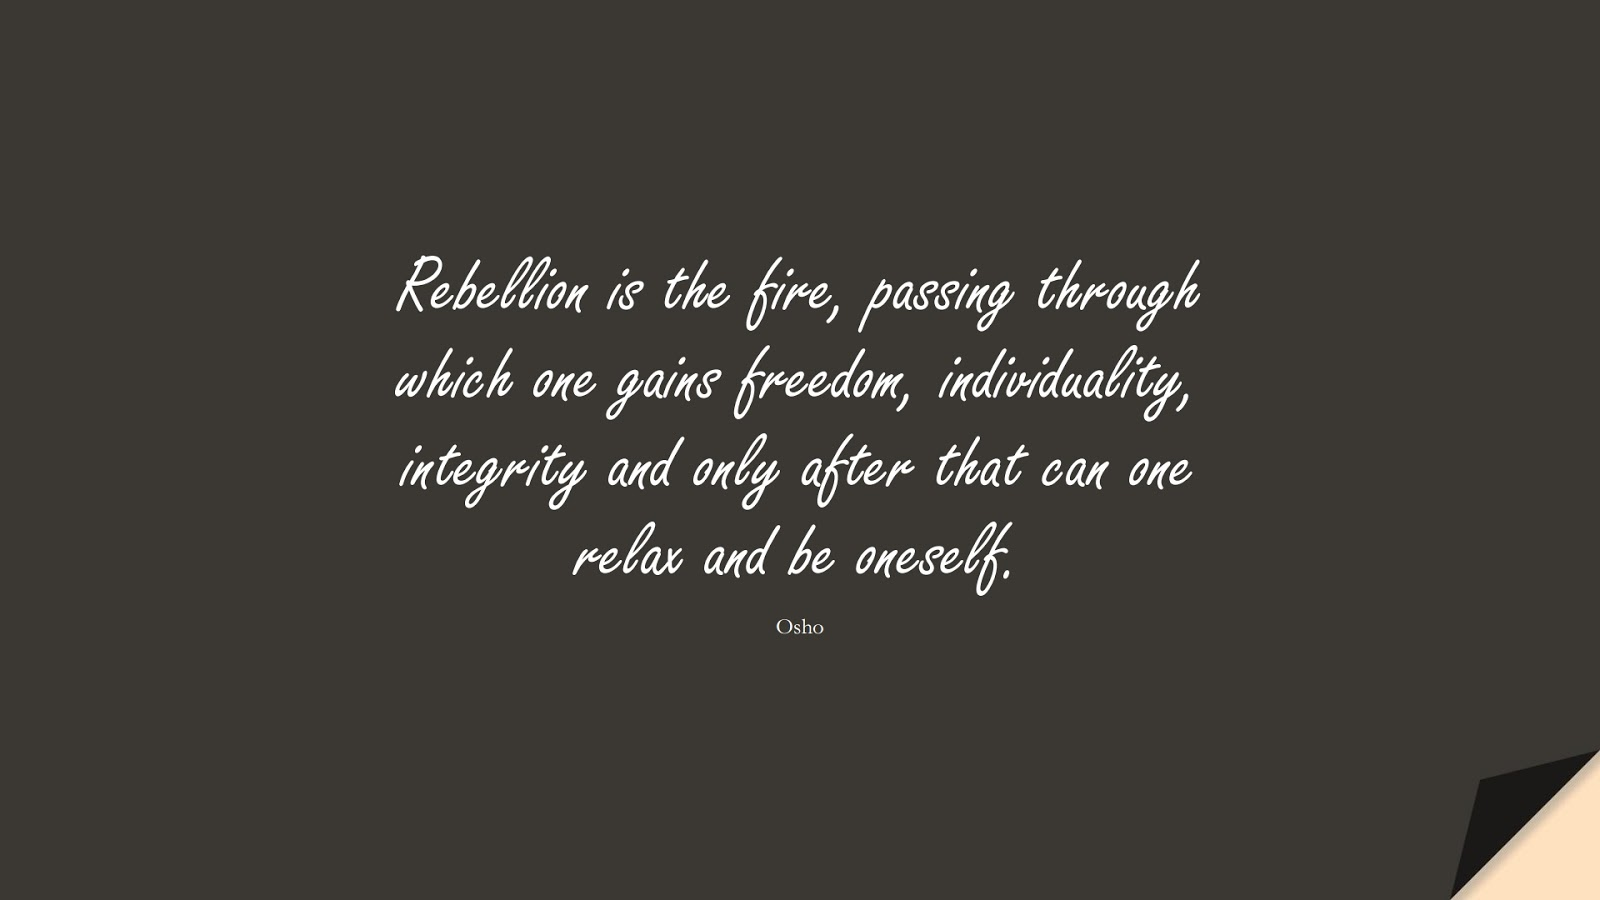 Rebellion is the fire, passing through which one gains freedom, individuality, integrity and only after that can one relax and be oneself. (Osho);  #BeYourselfQuotes